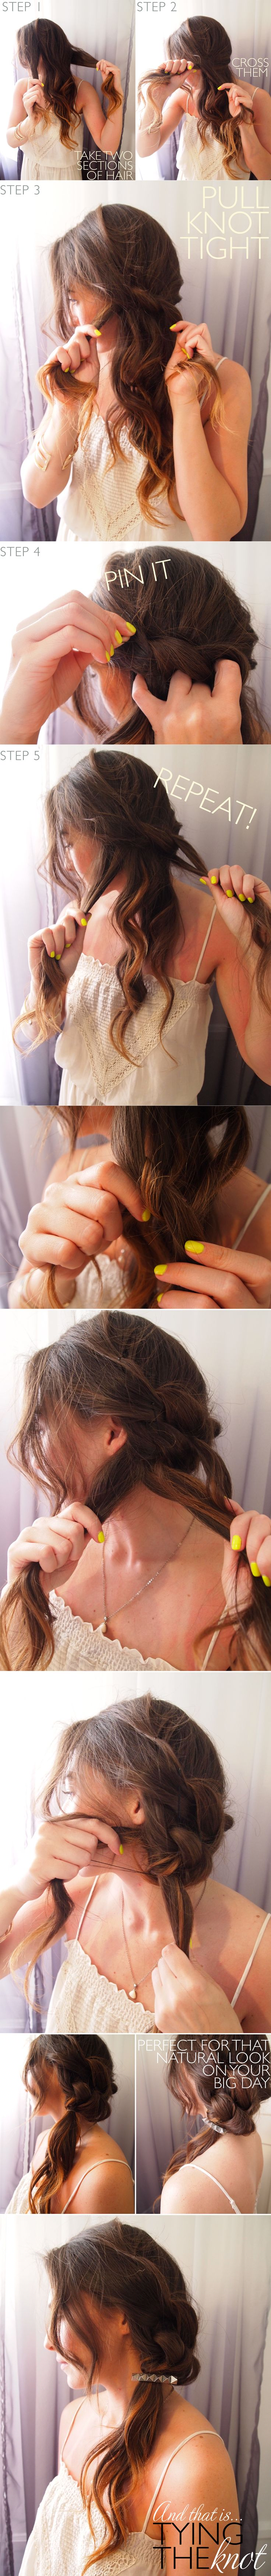 : Knot Hairstyle, Hair Tutorials, Knot Braid, Hair Styles, Hair Do, Hair Knot, Fun Braids, Knotted Hairstyle, New Hairstyles